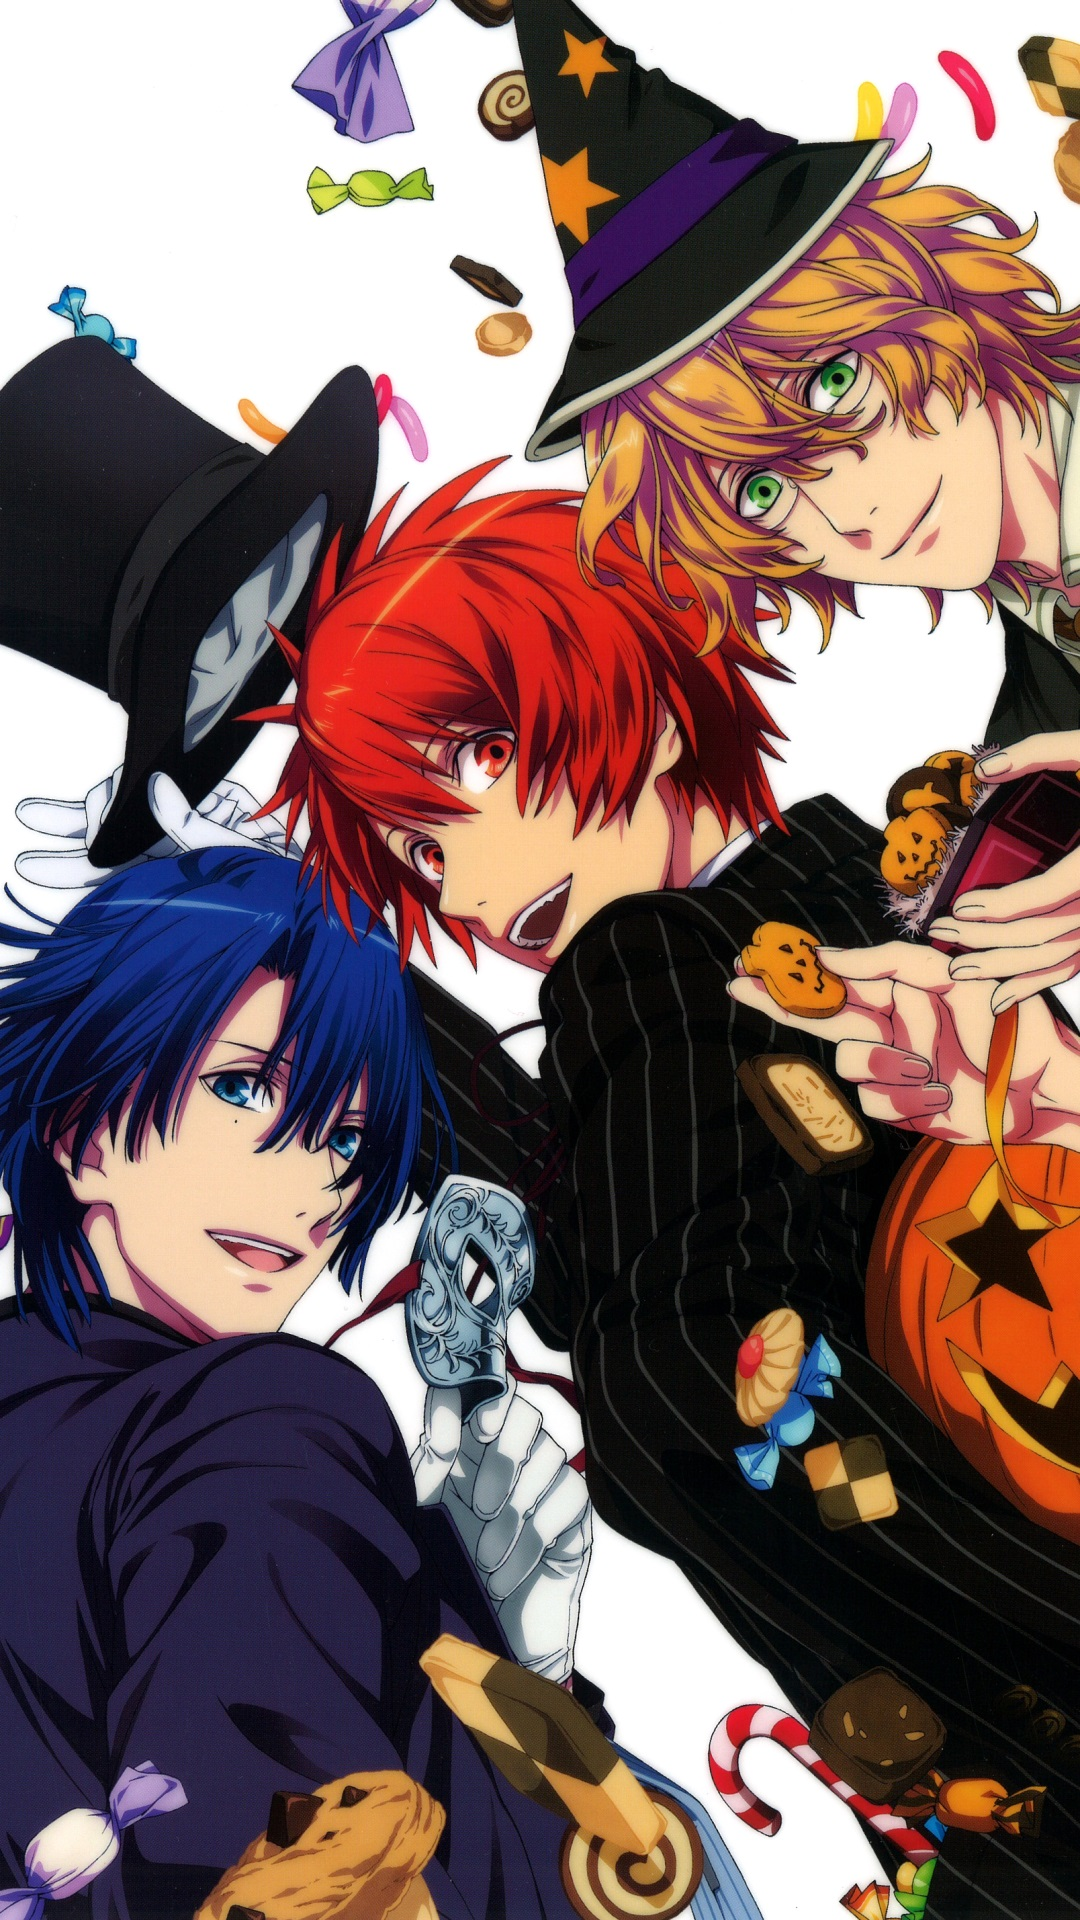 Anime Halloween 2013Sony Xperia Z wallpaper1080x1920 4 1080x1920